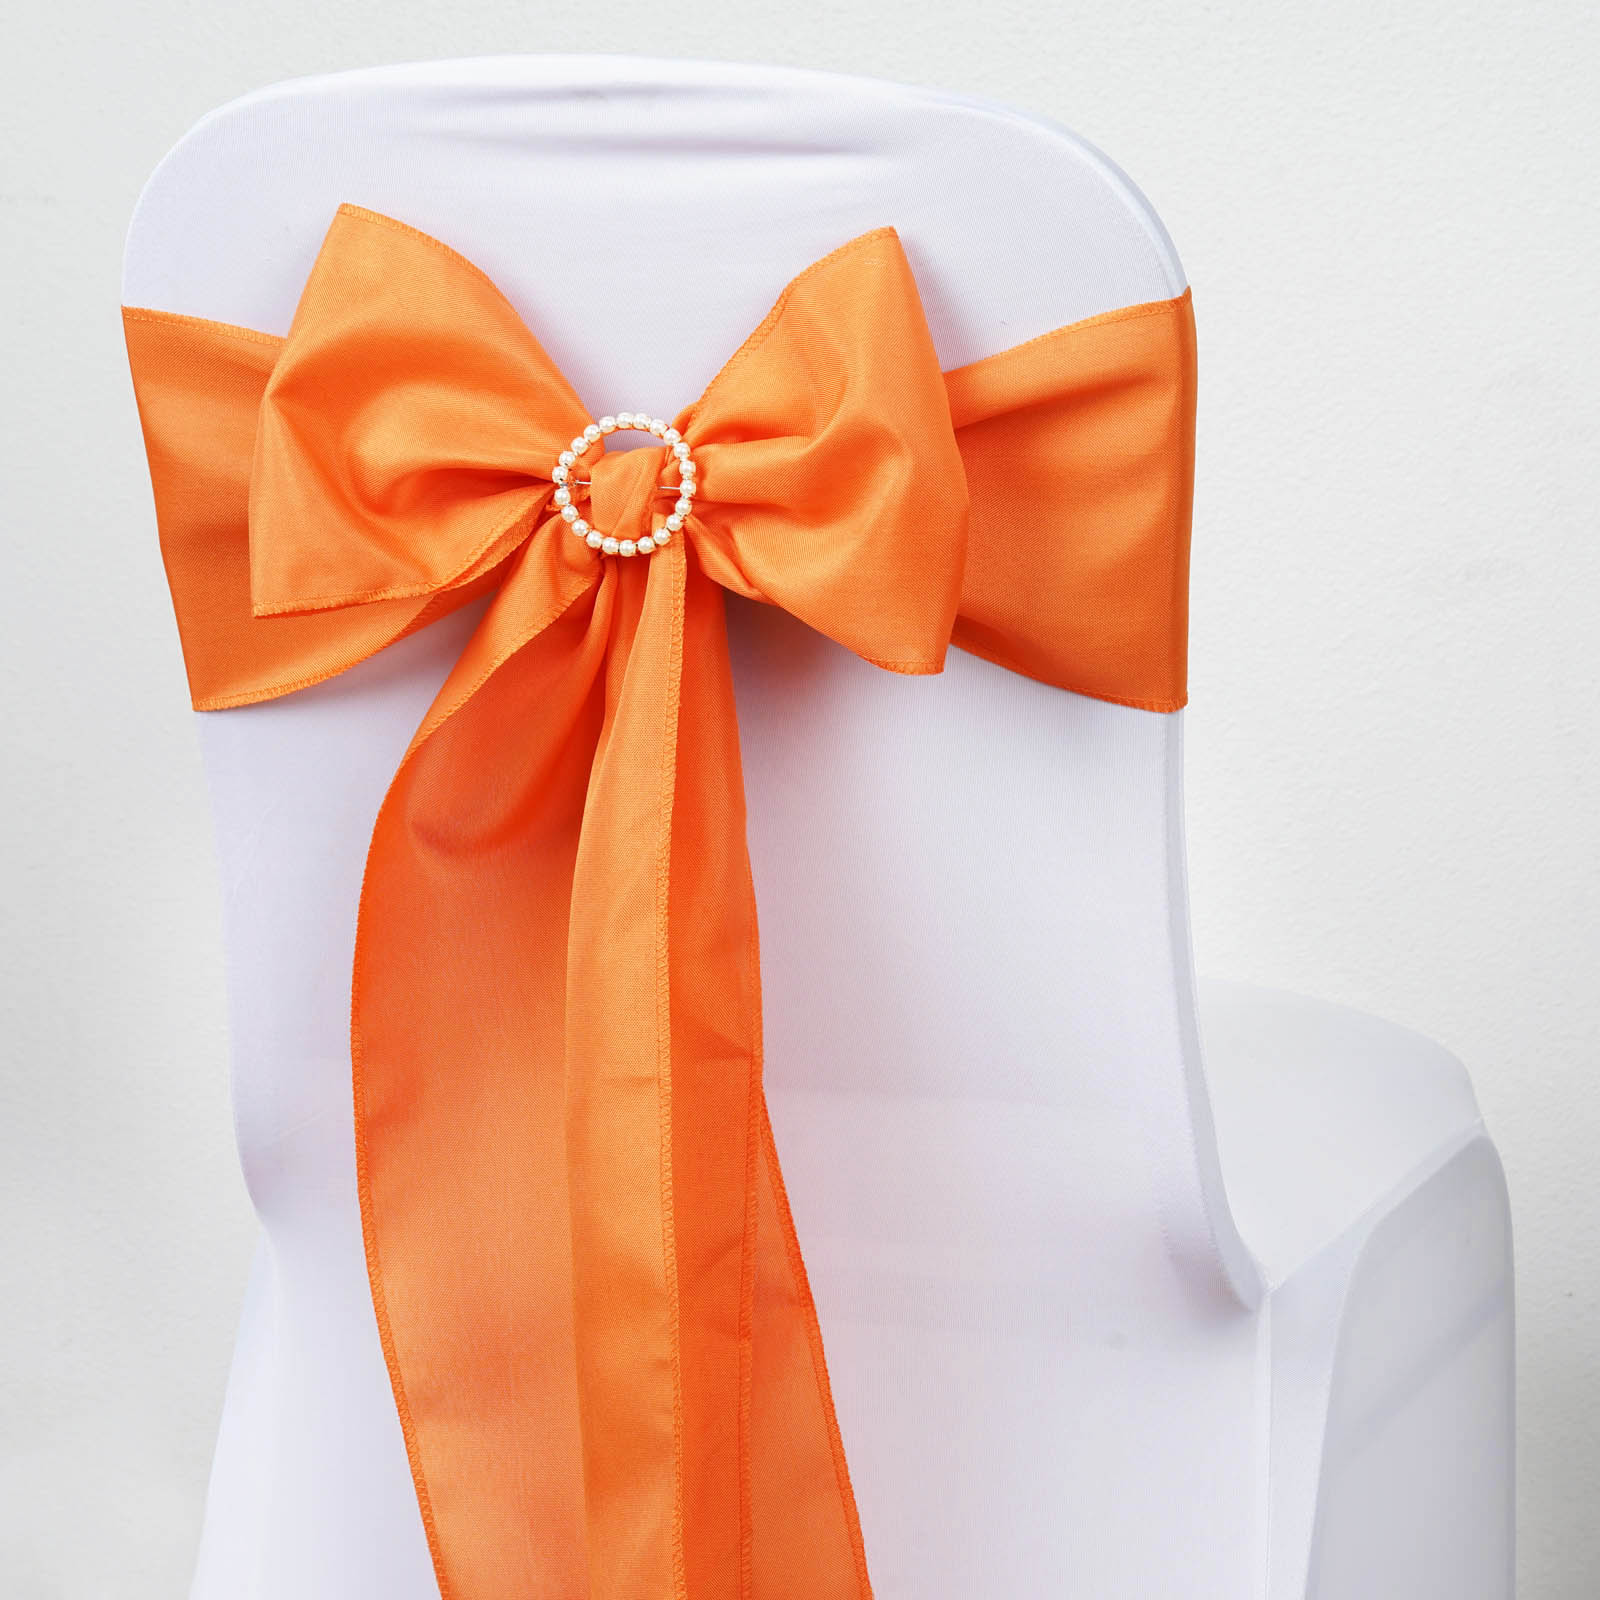 polyester chair sashes wholesale foam chairs for toddlers bows ties wedding reception